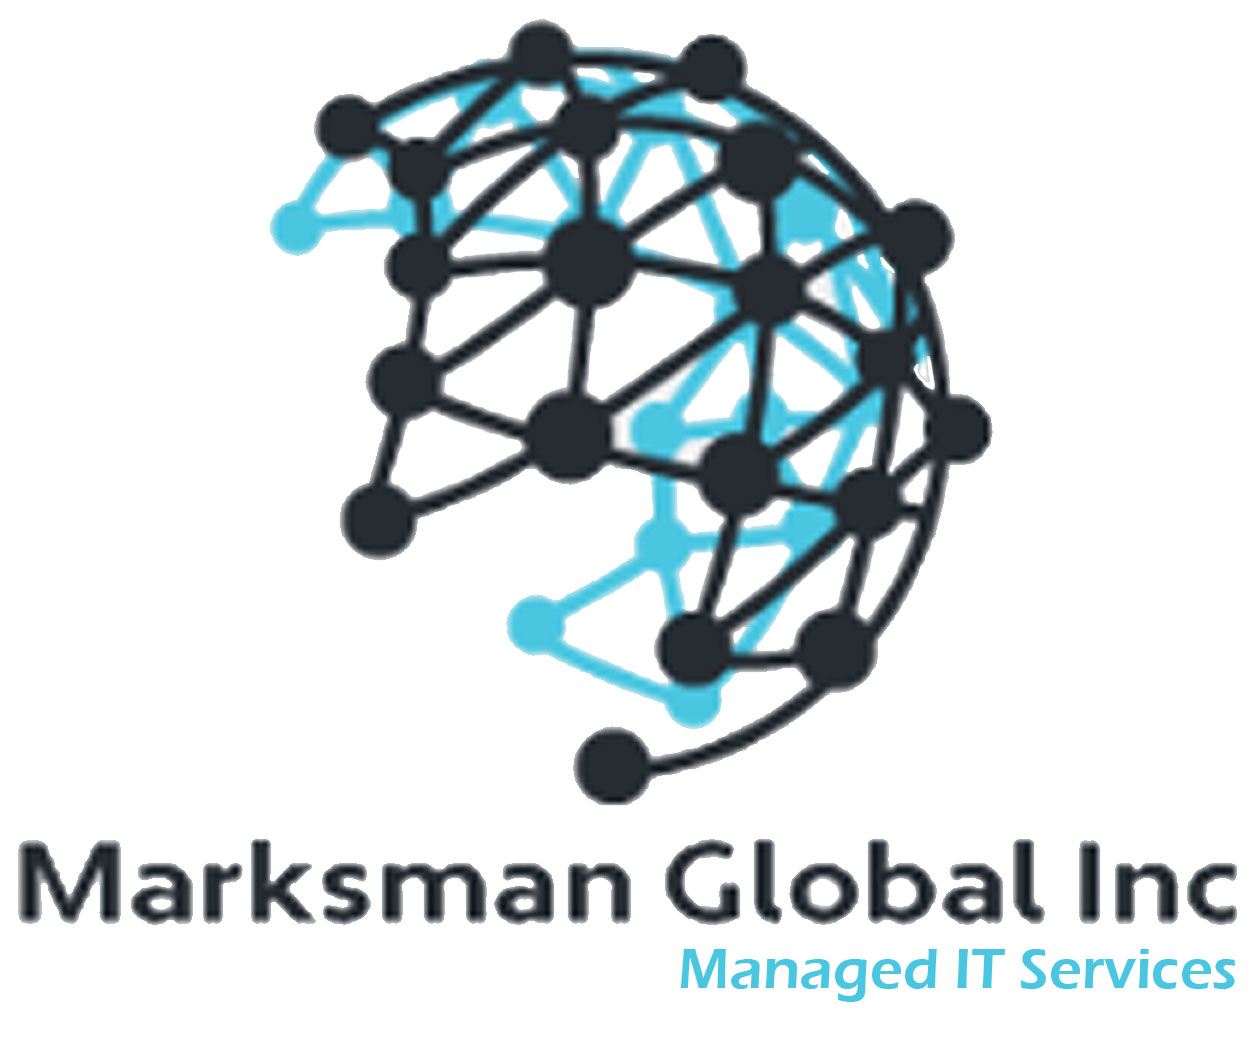 Marksman Global Inc - Managed IT Services Company